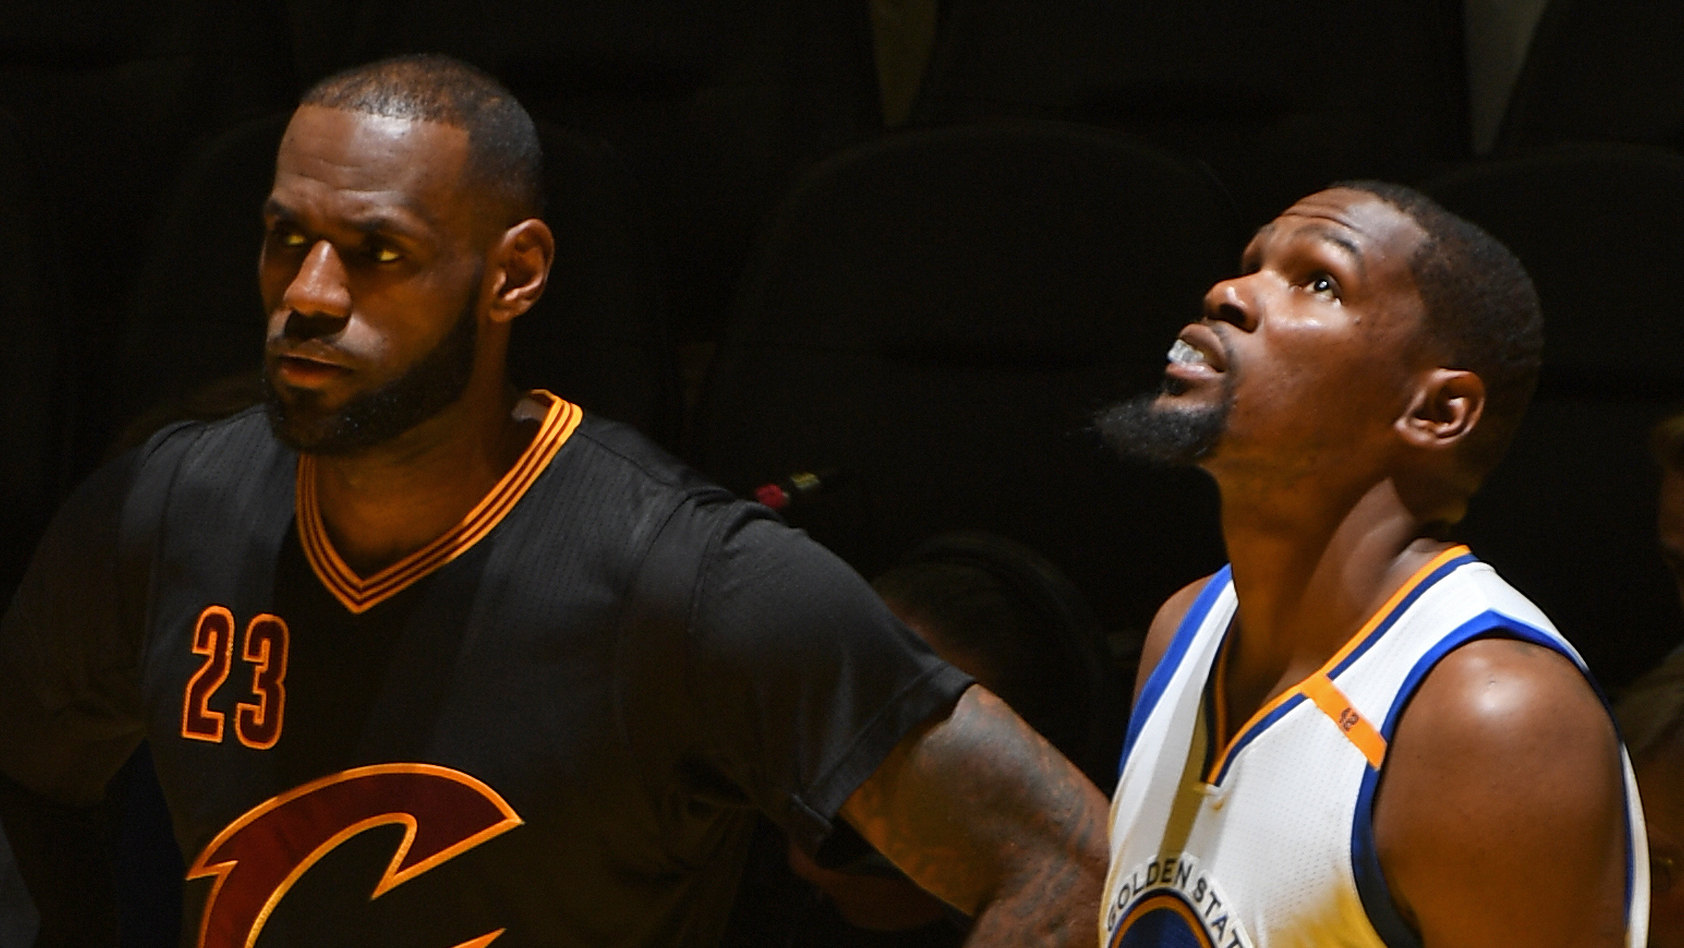 Lebron-james-kevin-durant-rap-song-audio-leaked